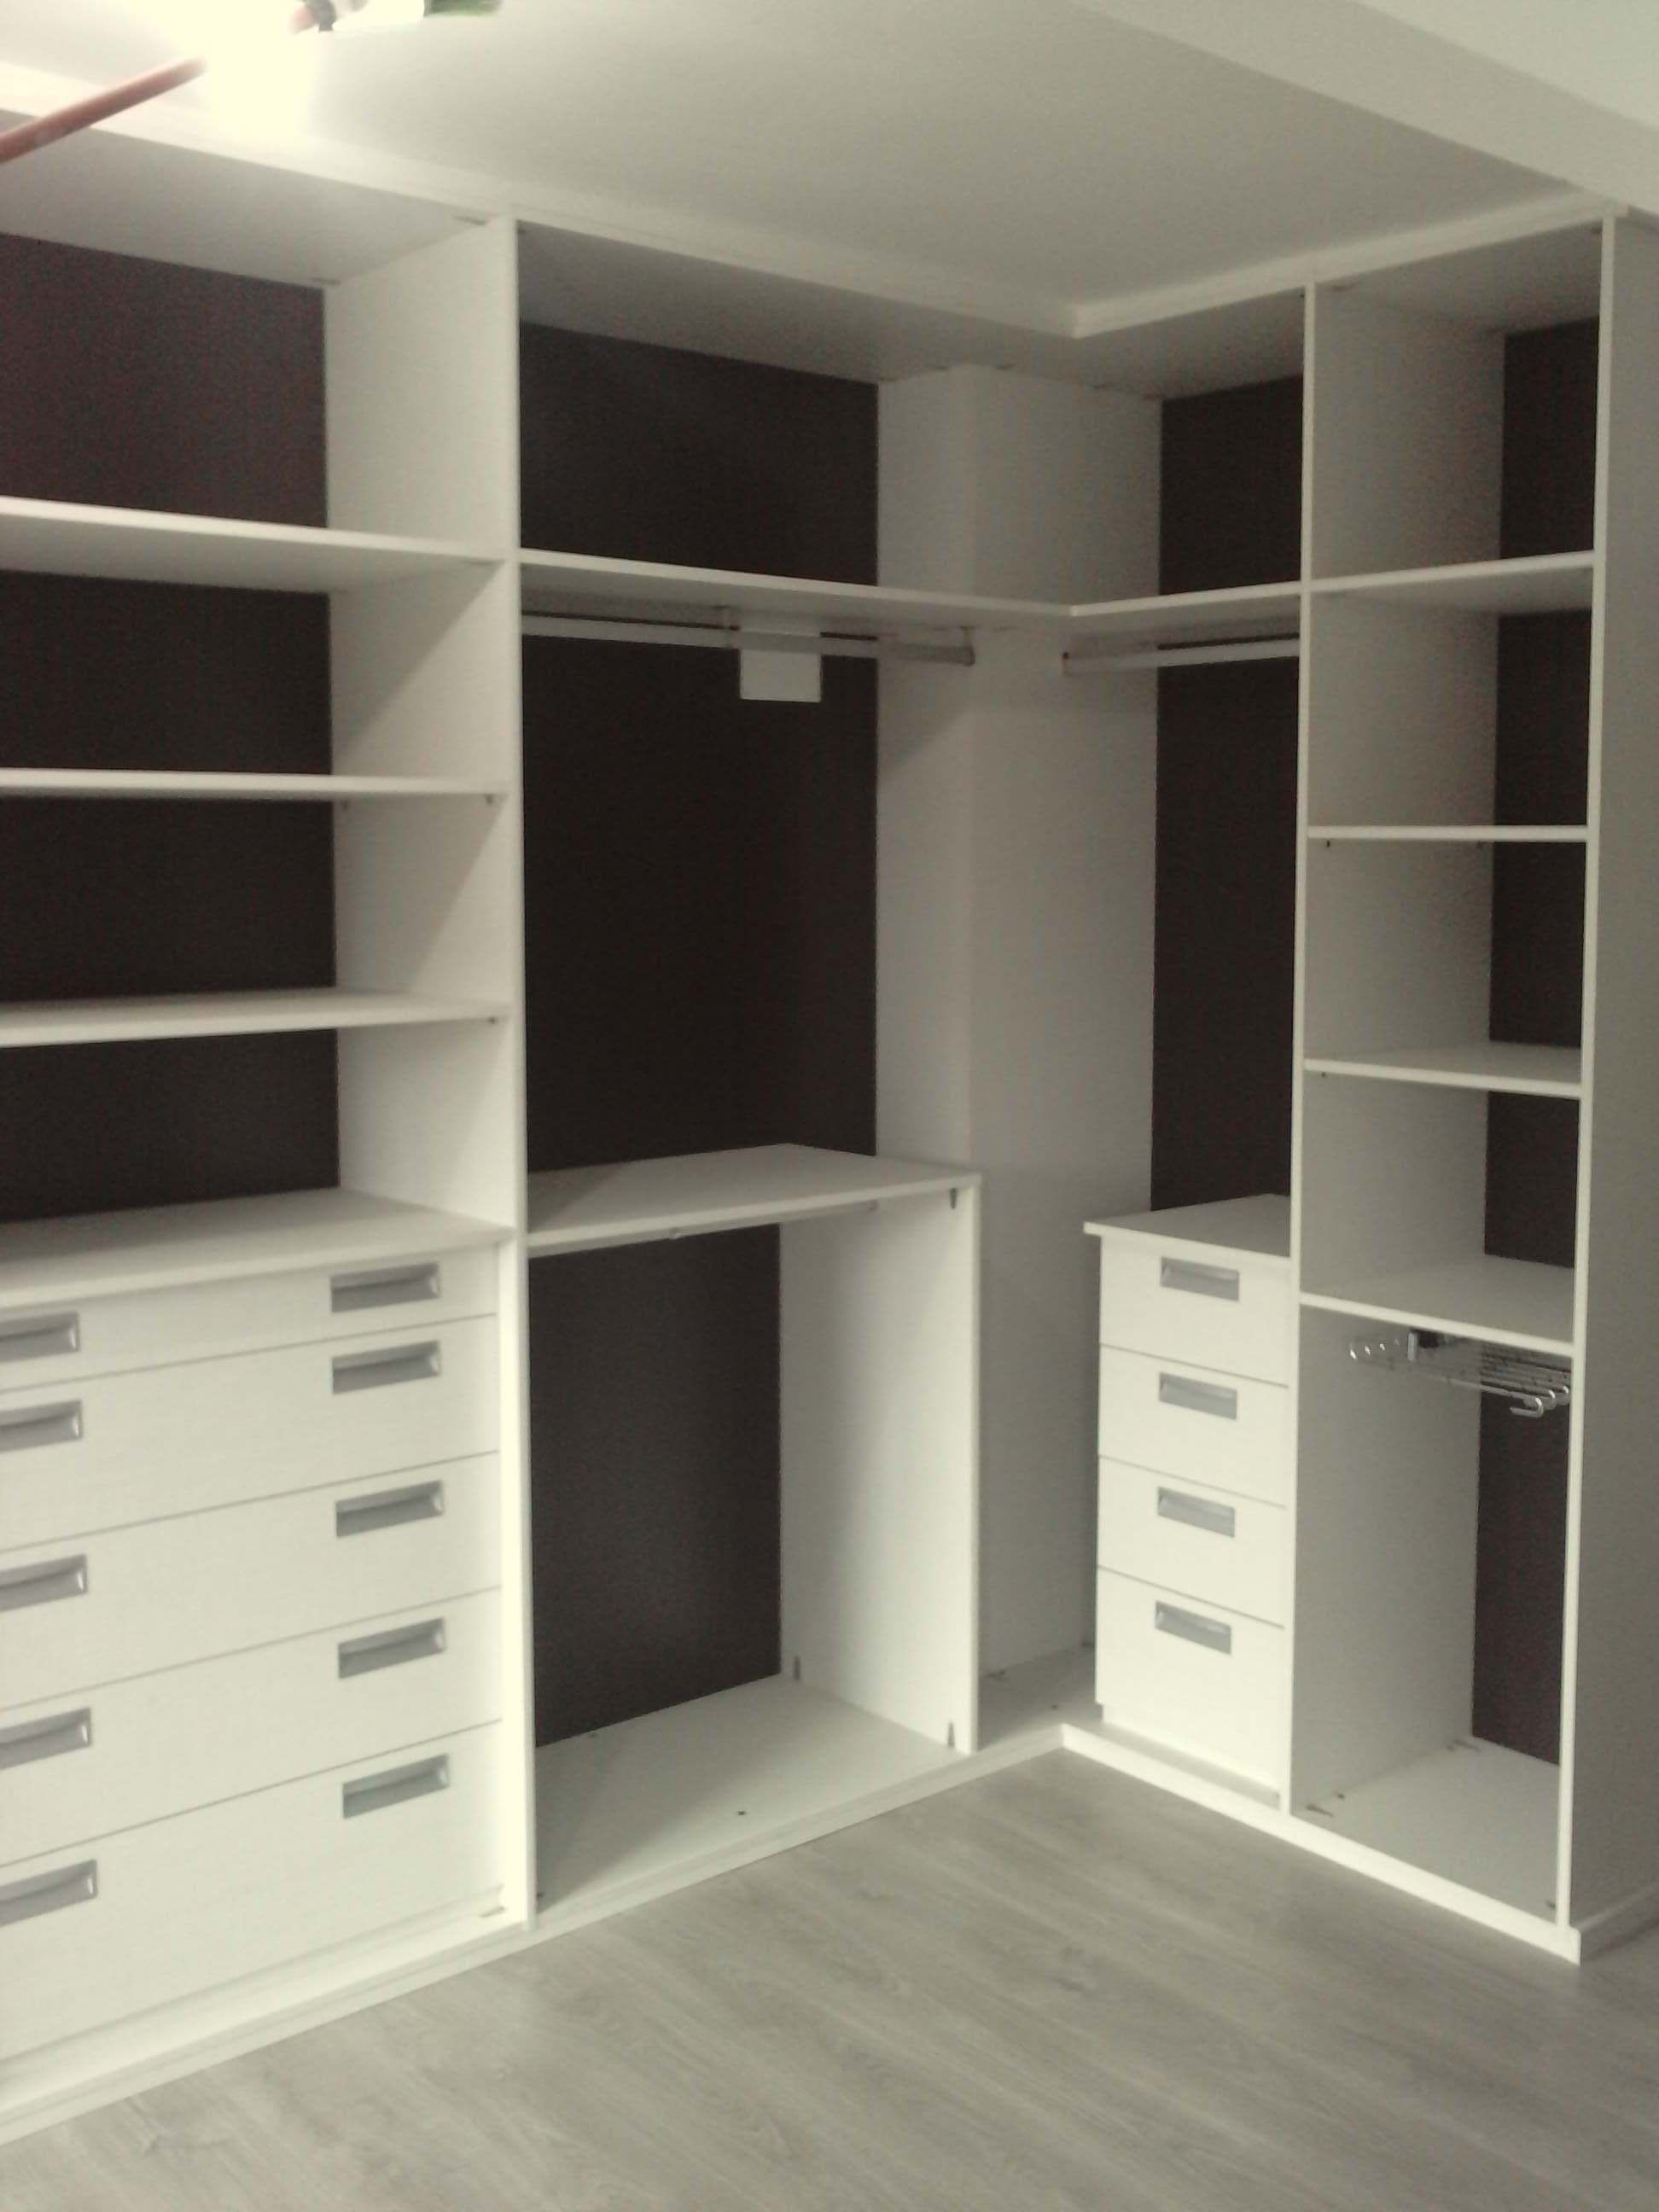 white wardrobe kitchen closets portable amazon closet clothes with storage doors black com dp organizer jl home tespo